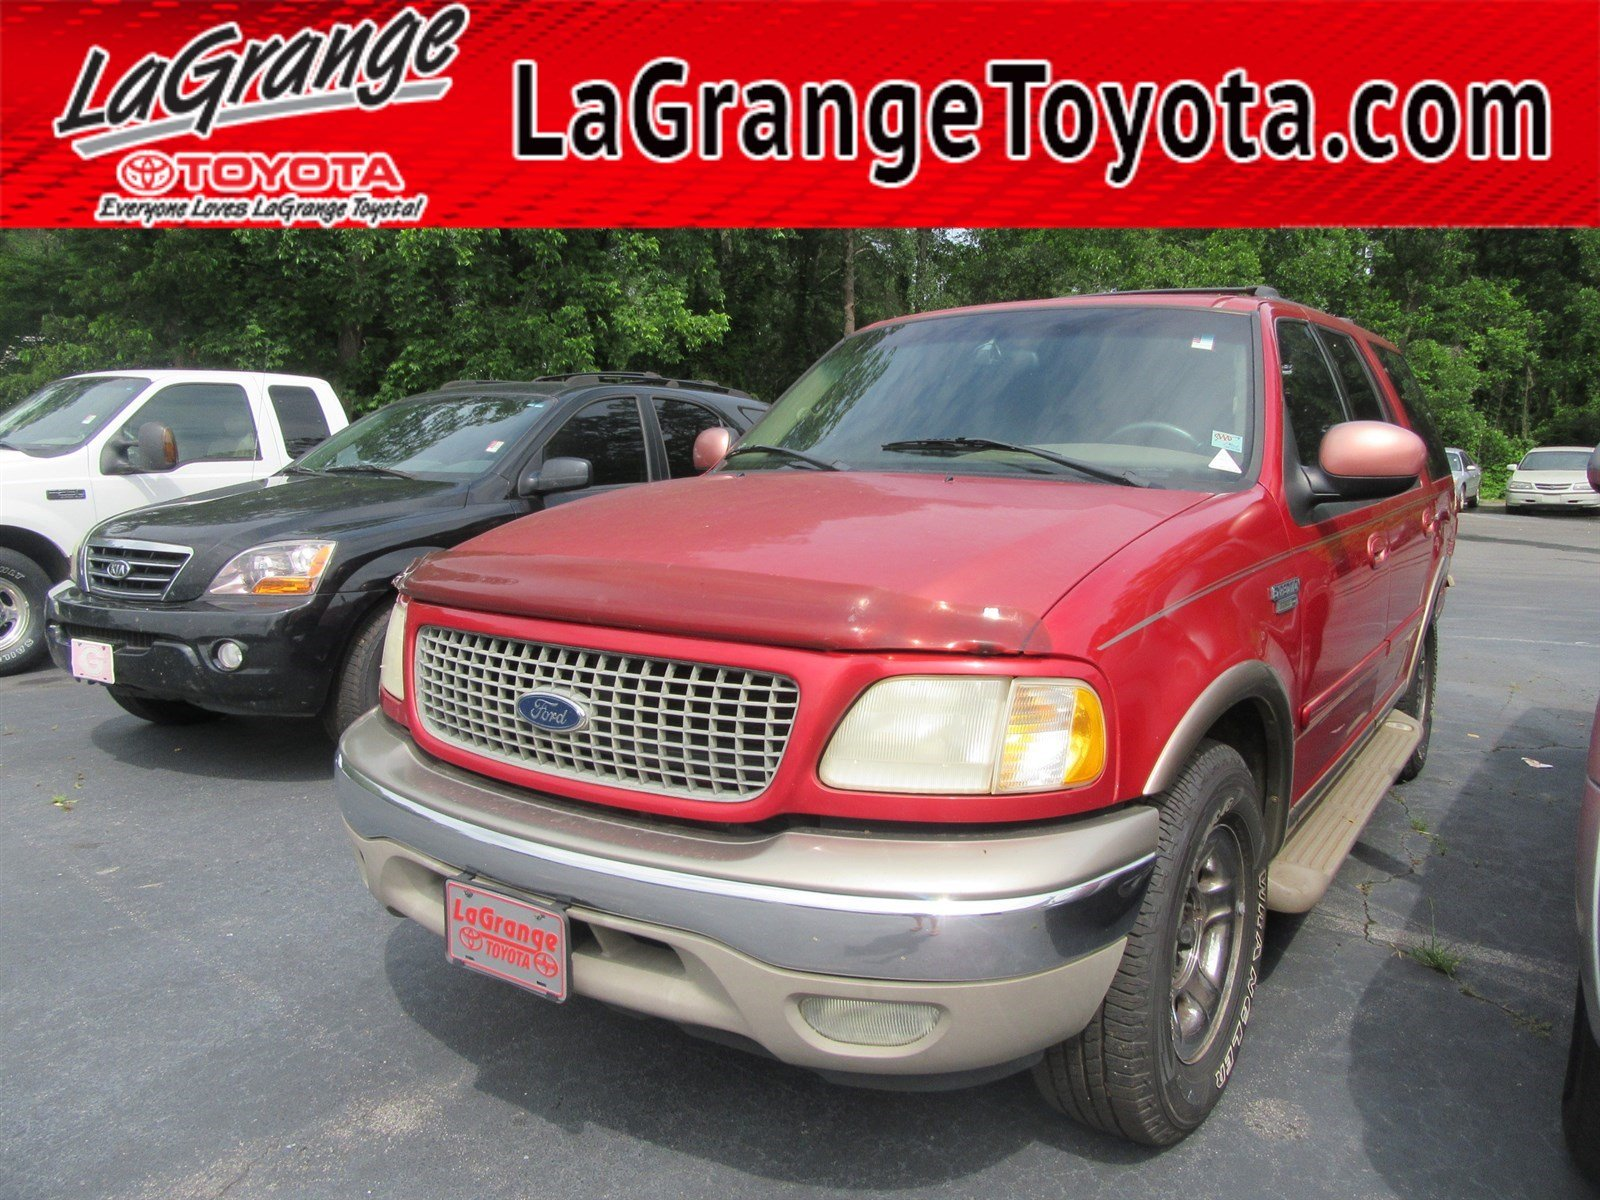 Pre owned 2000 ford expedition 119 wb eddie bauer suv in lagrange